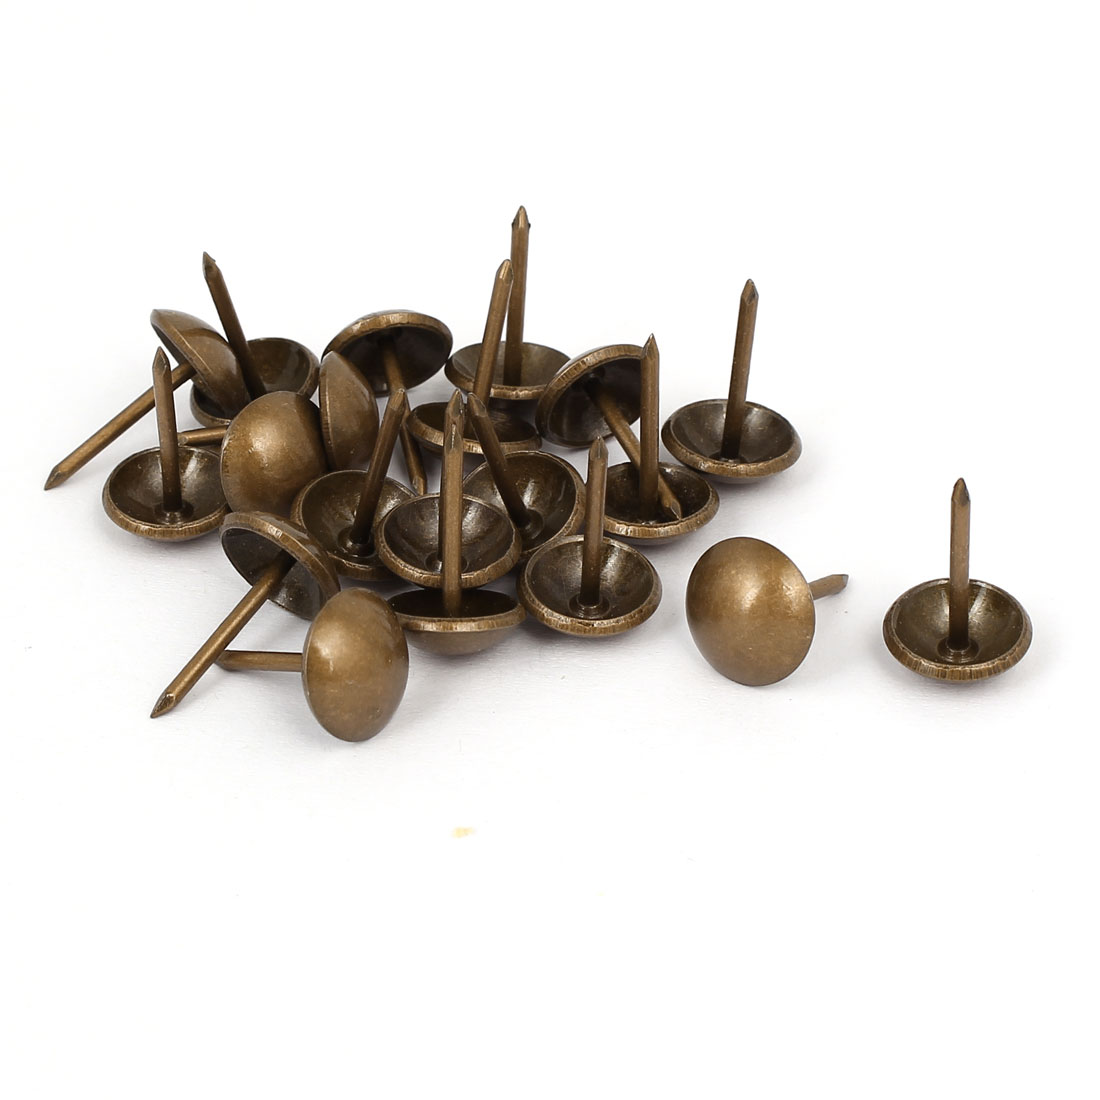 11mm Head Dia 17mm Height Upholstery Nail Thumb Tacks Push Pin Copper Tone 20pcs